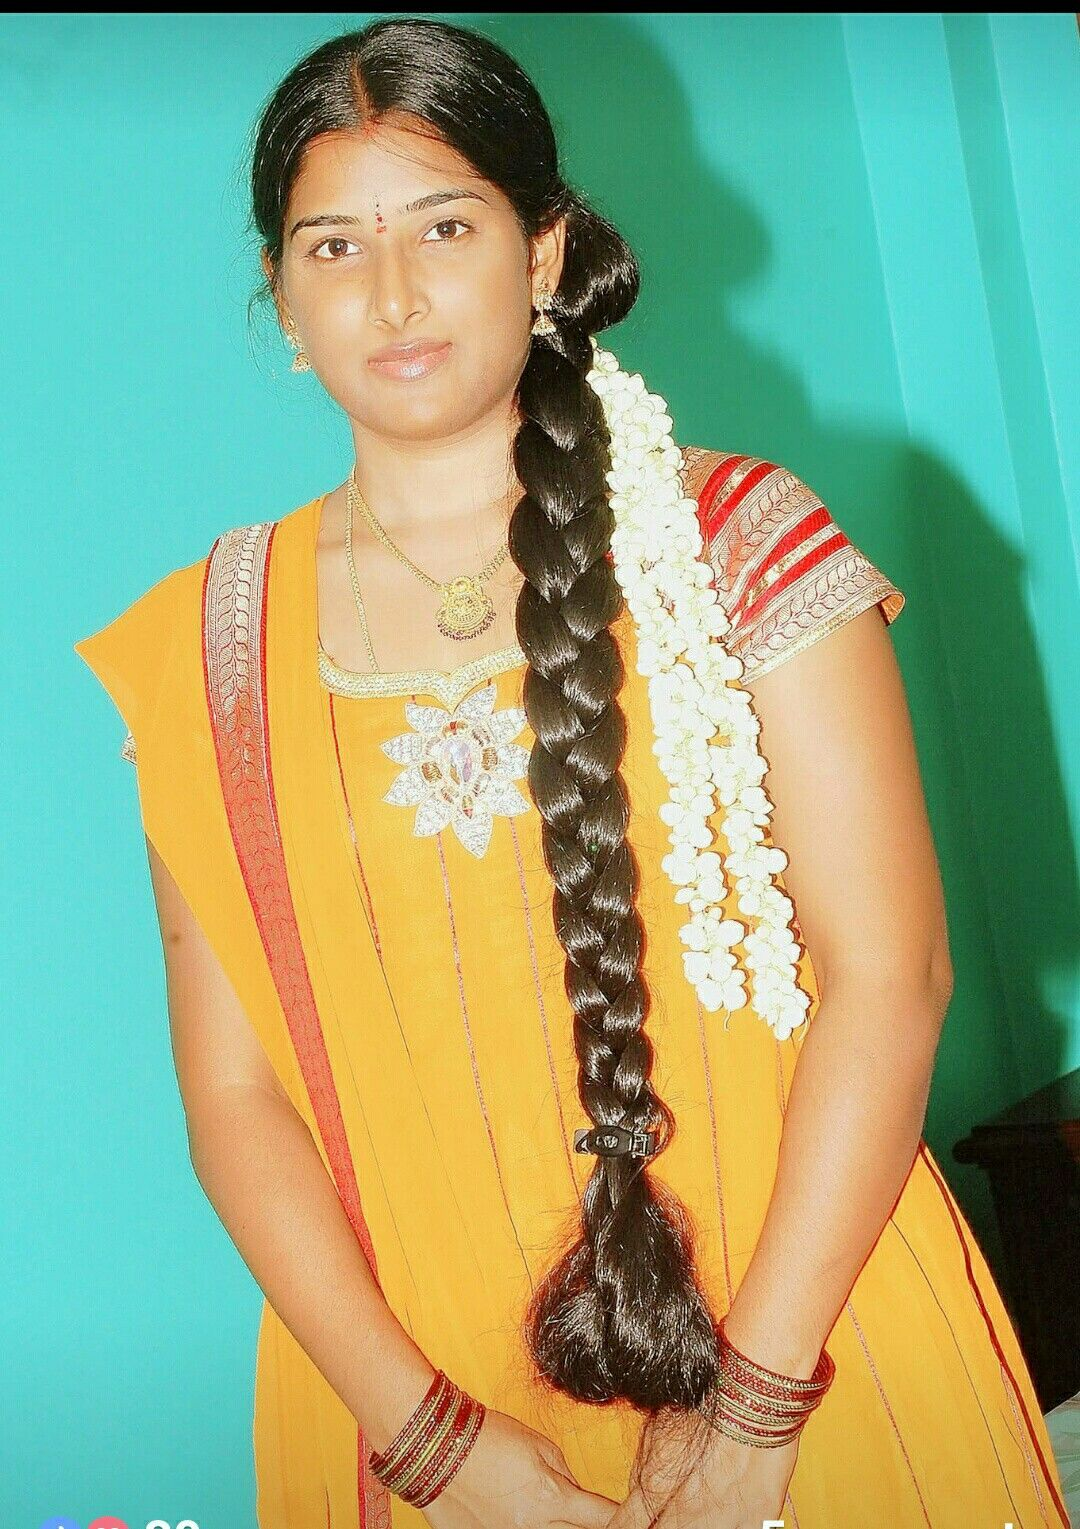 Tamil Girl Sporting A Long Hair Which Is Oiled And Neatly Braided She Also Sports Jasmine F Hair Oil Ingredients Long Hair Indian Girls Indian Long Hair Braid